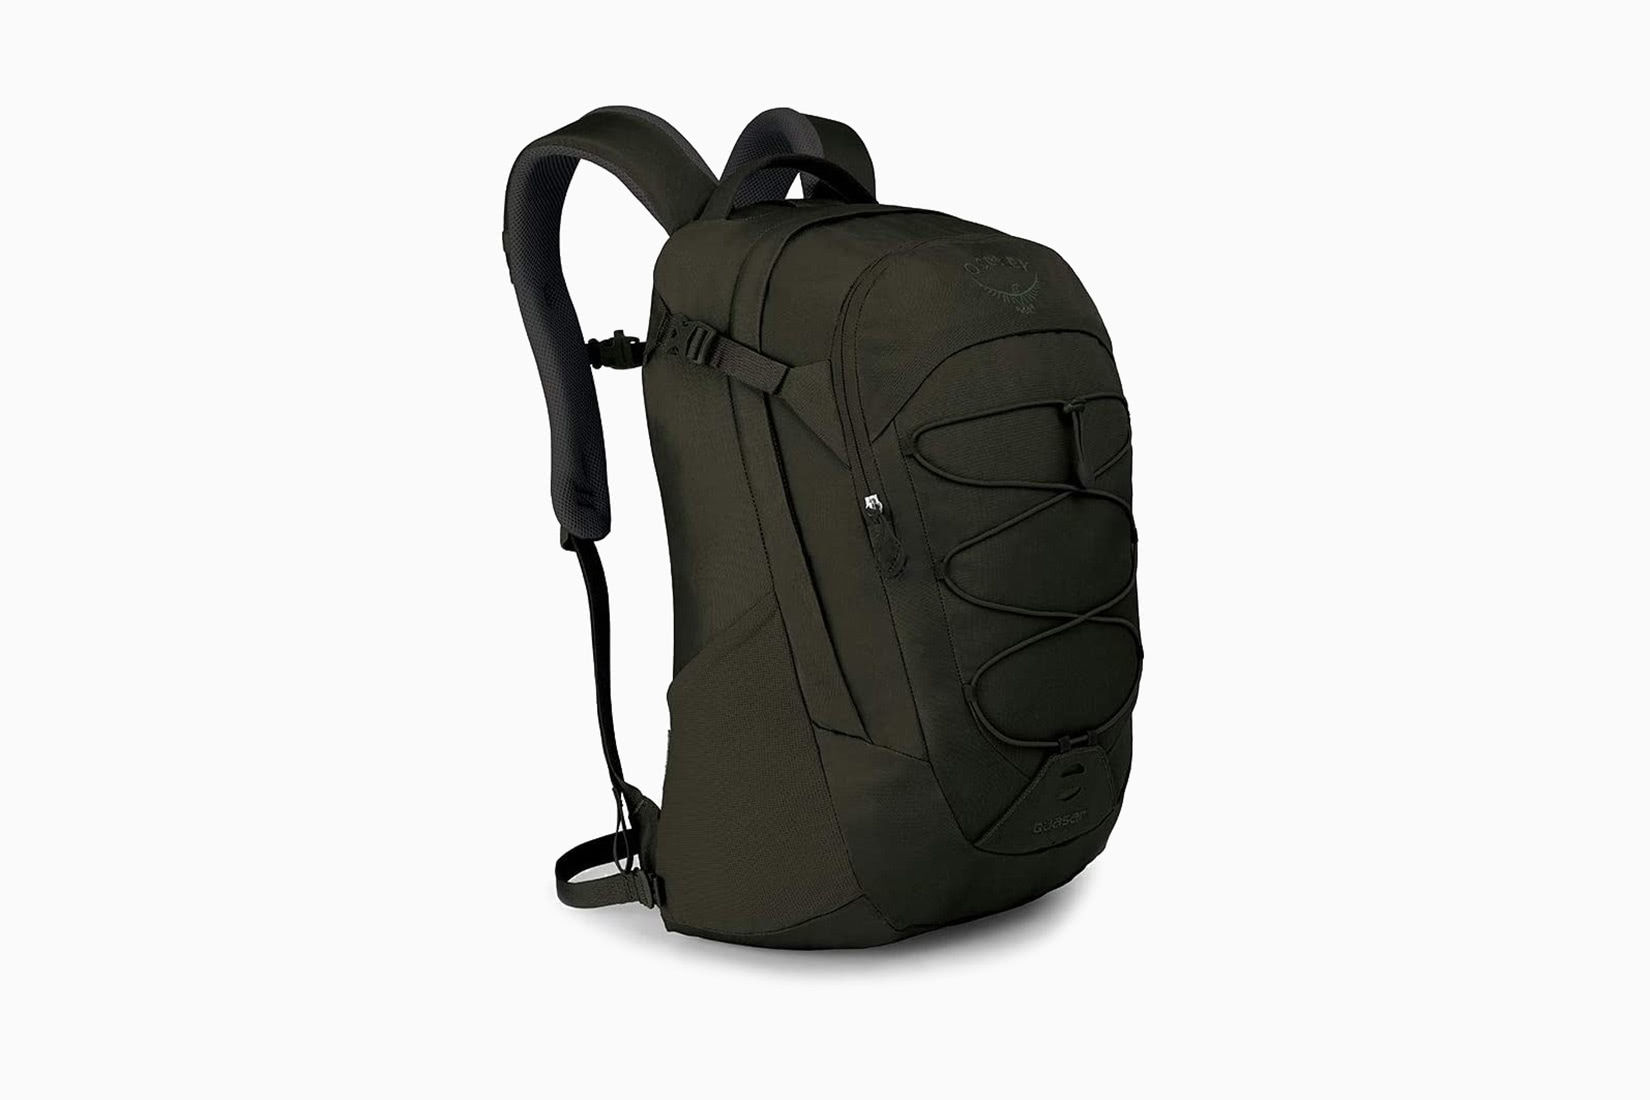 best edc backpack osprey quasar - Luxe Digital